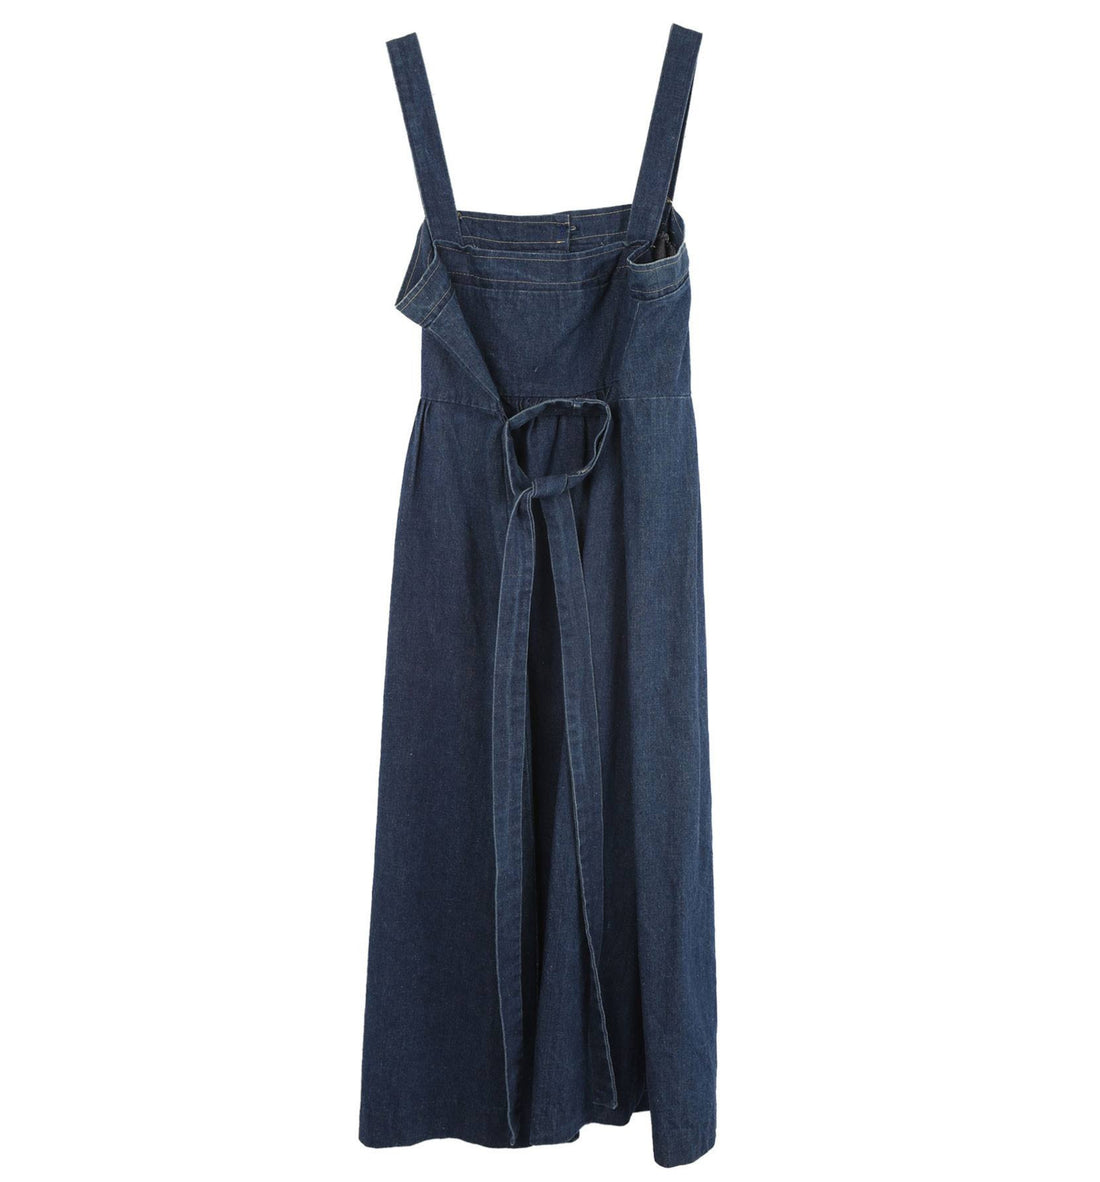 Vintage Prelude Denim Dress - Vintage: Women's - Iron and Resin